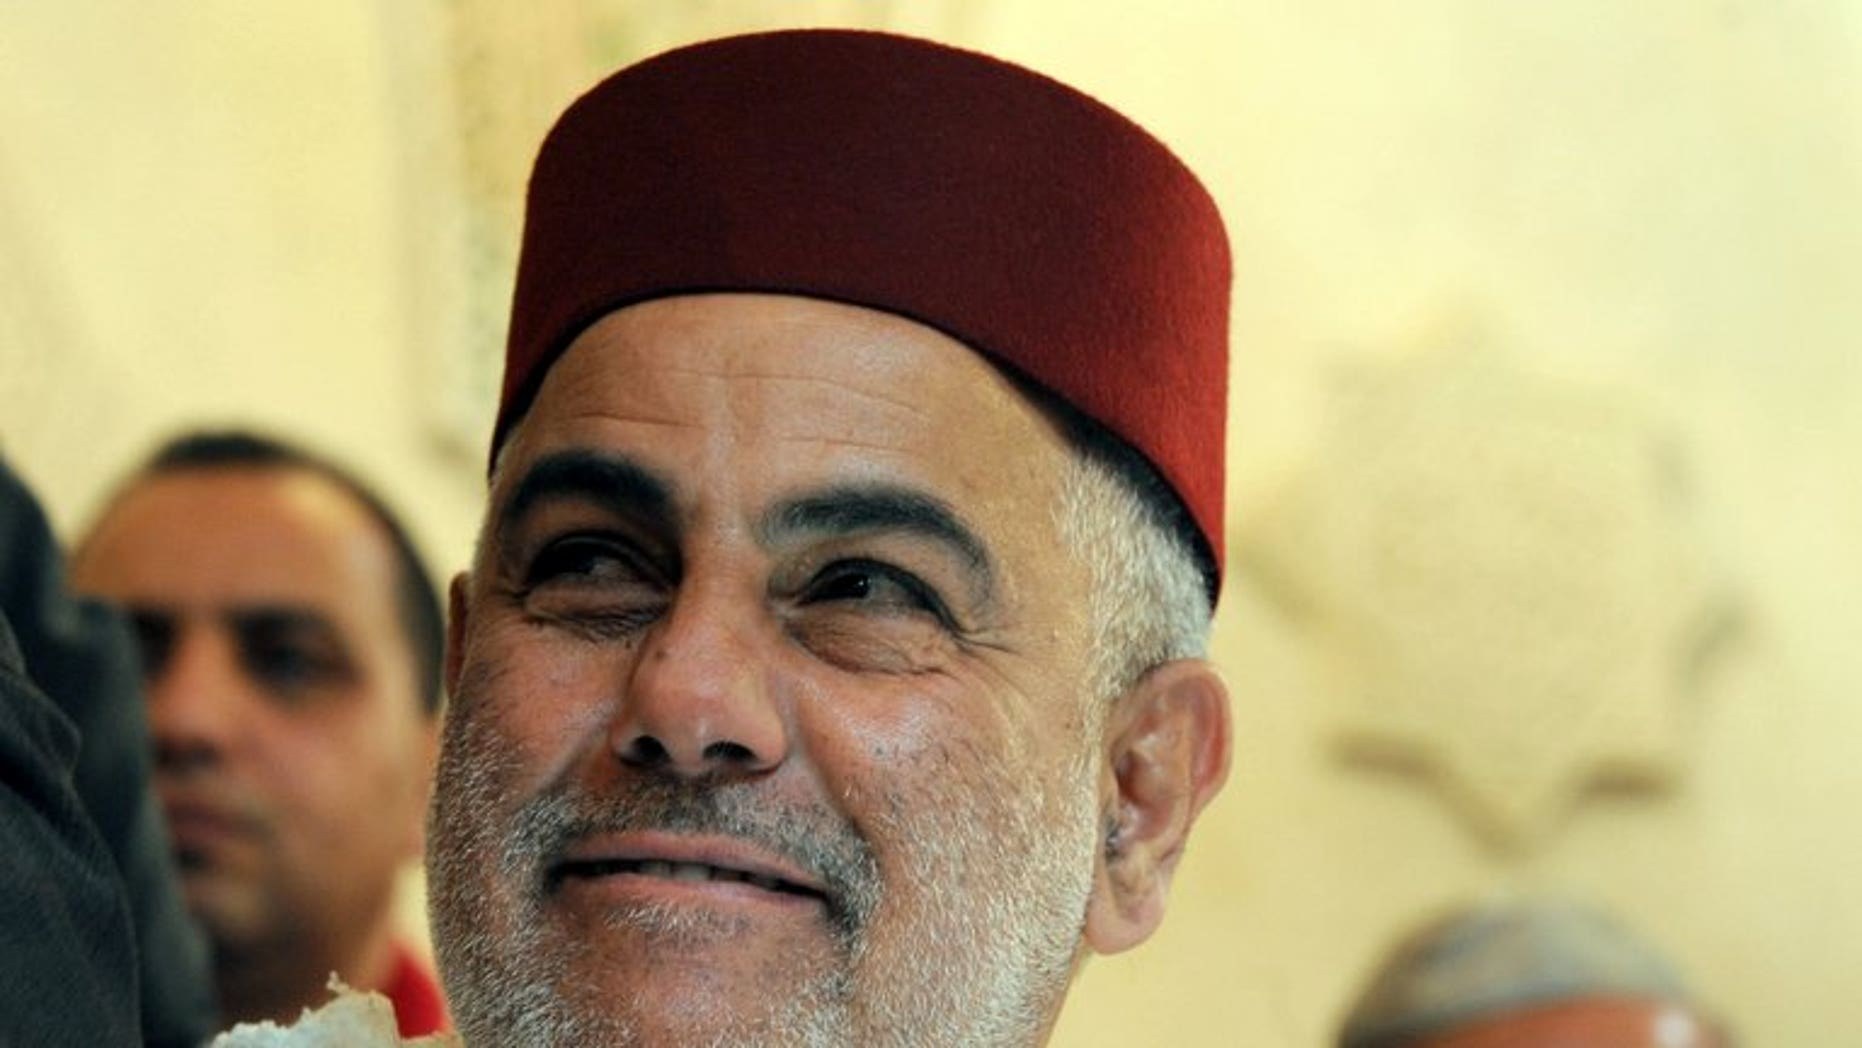 Moroccan Prime Minister Abdelilah Benkirane is pictured in Fez, on February 13, 2013. A wealthy Moroccan businessman was named interim finance minister on Friday, as the ruling Islamist party pursues efforts to form a new coalition government after its main ally quit.